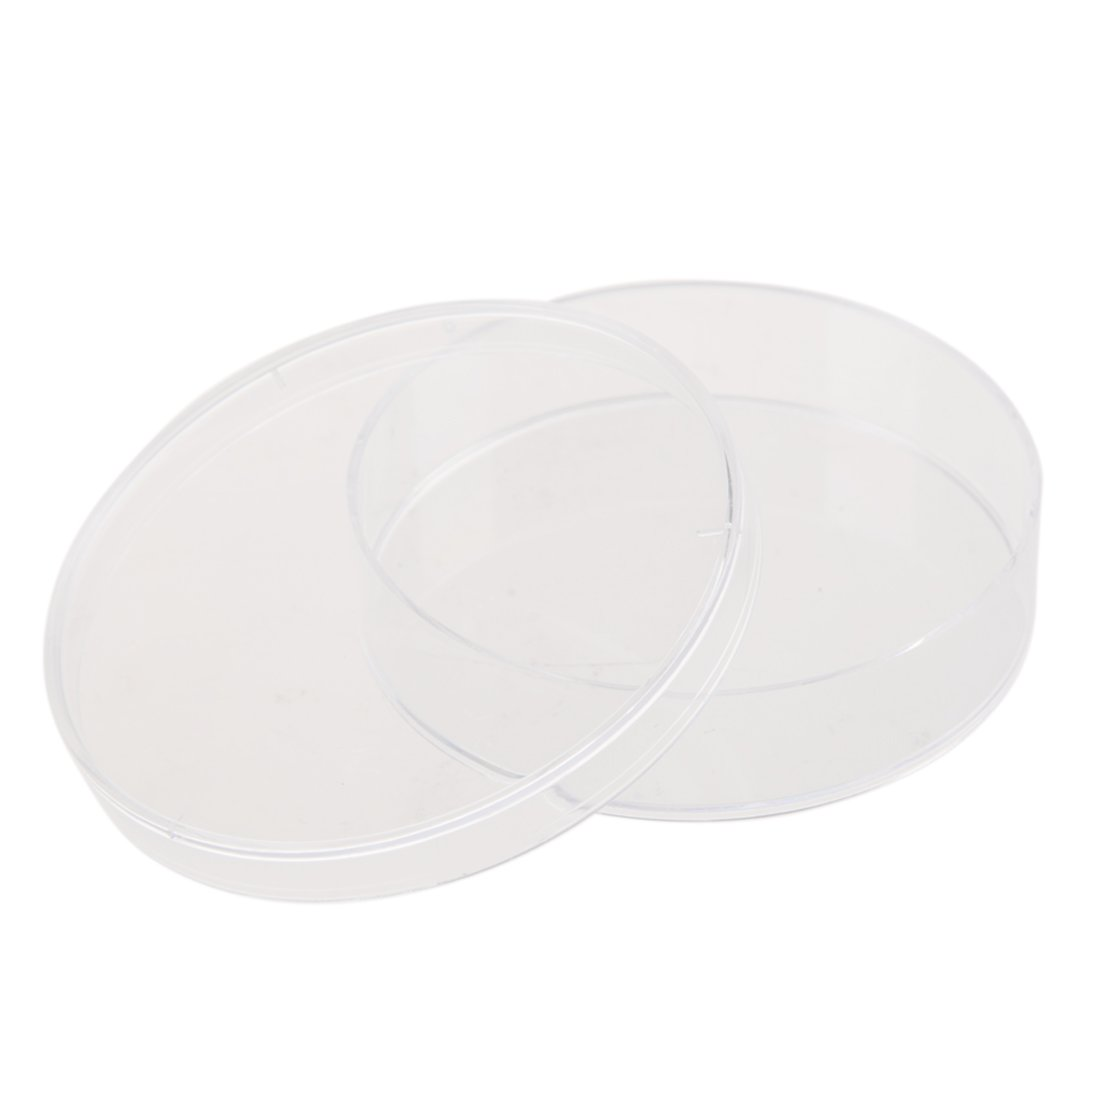 BNFUK 10Pcs Sterile Petri Dishes w//Lids for Lab Plate Bacterial Yeast 55mm x 15mm